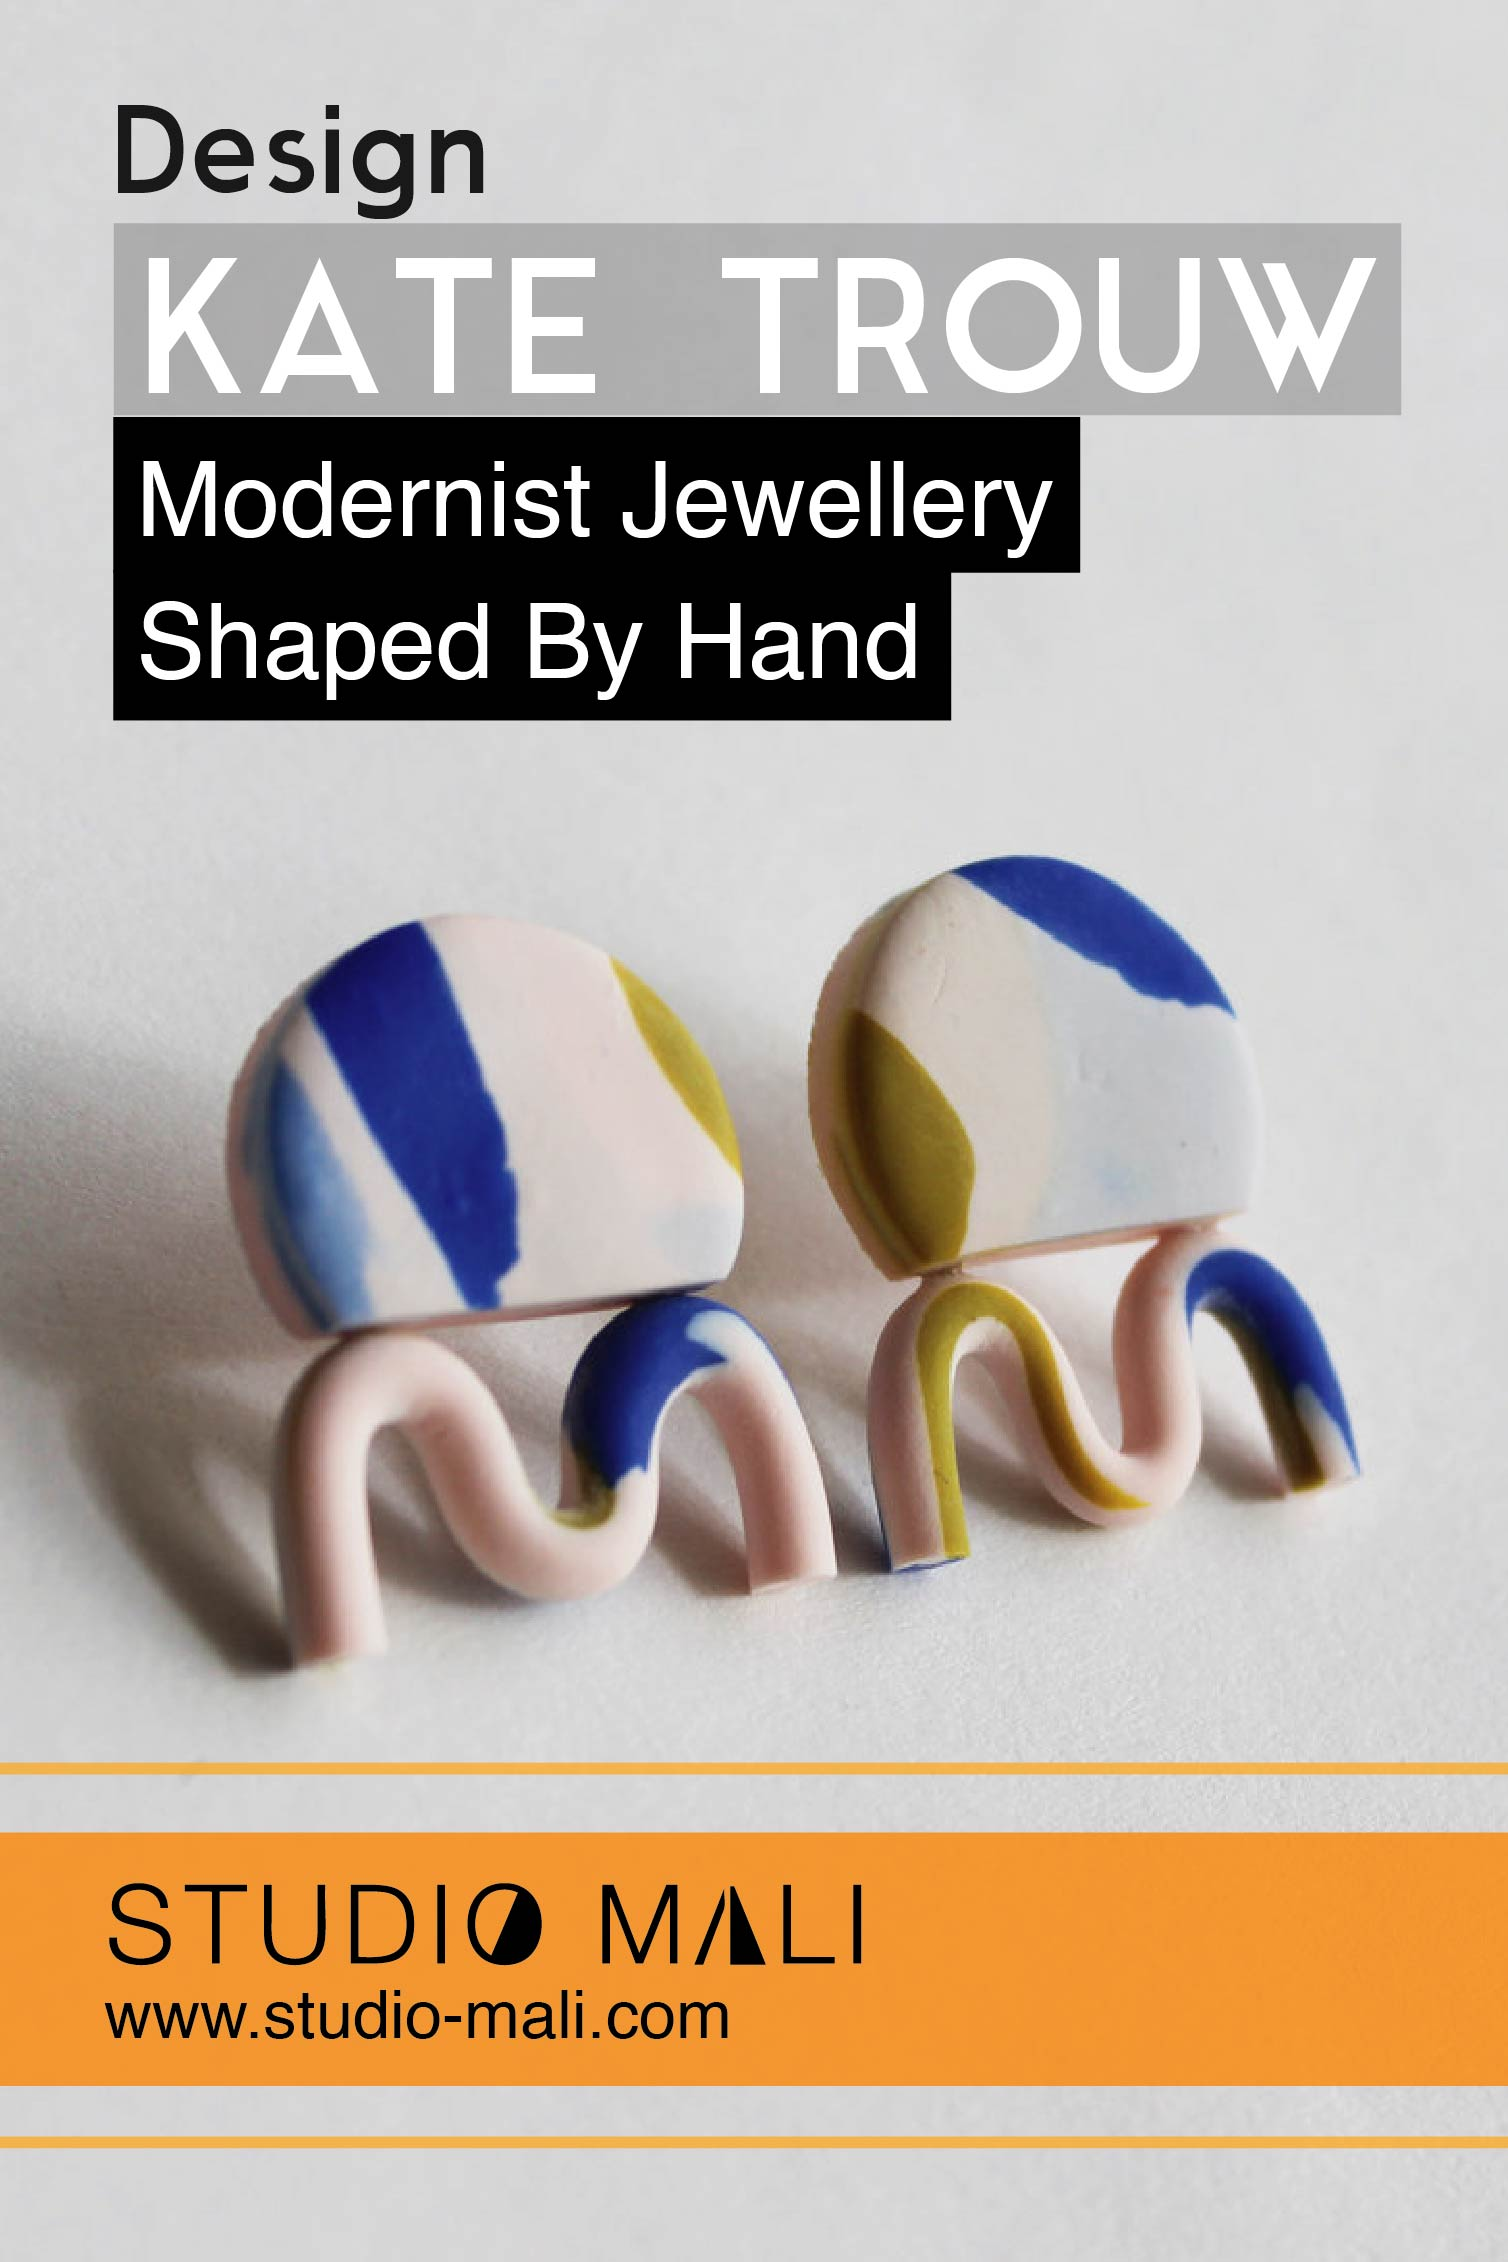 Kate Trouw - Modernist Jewellery Shaped By Hand.jpg